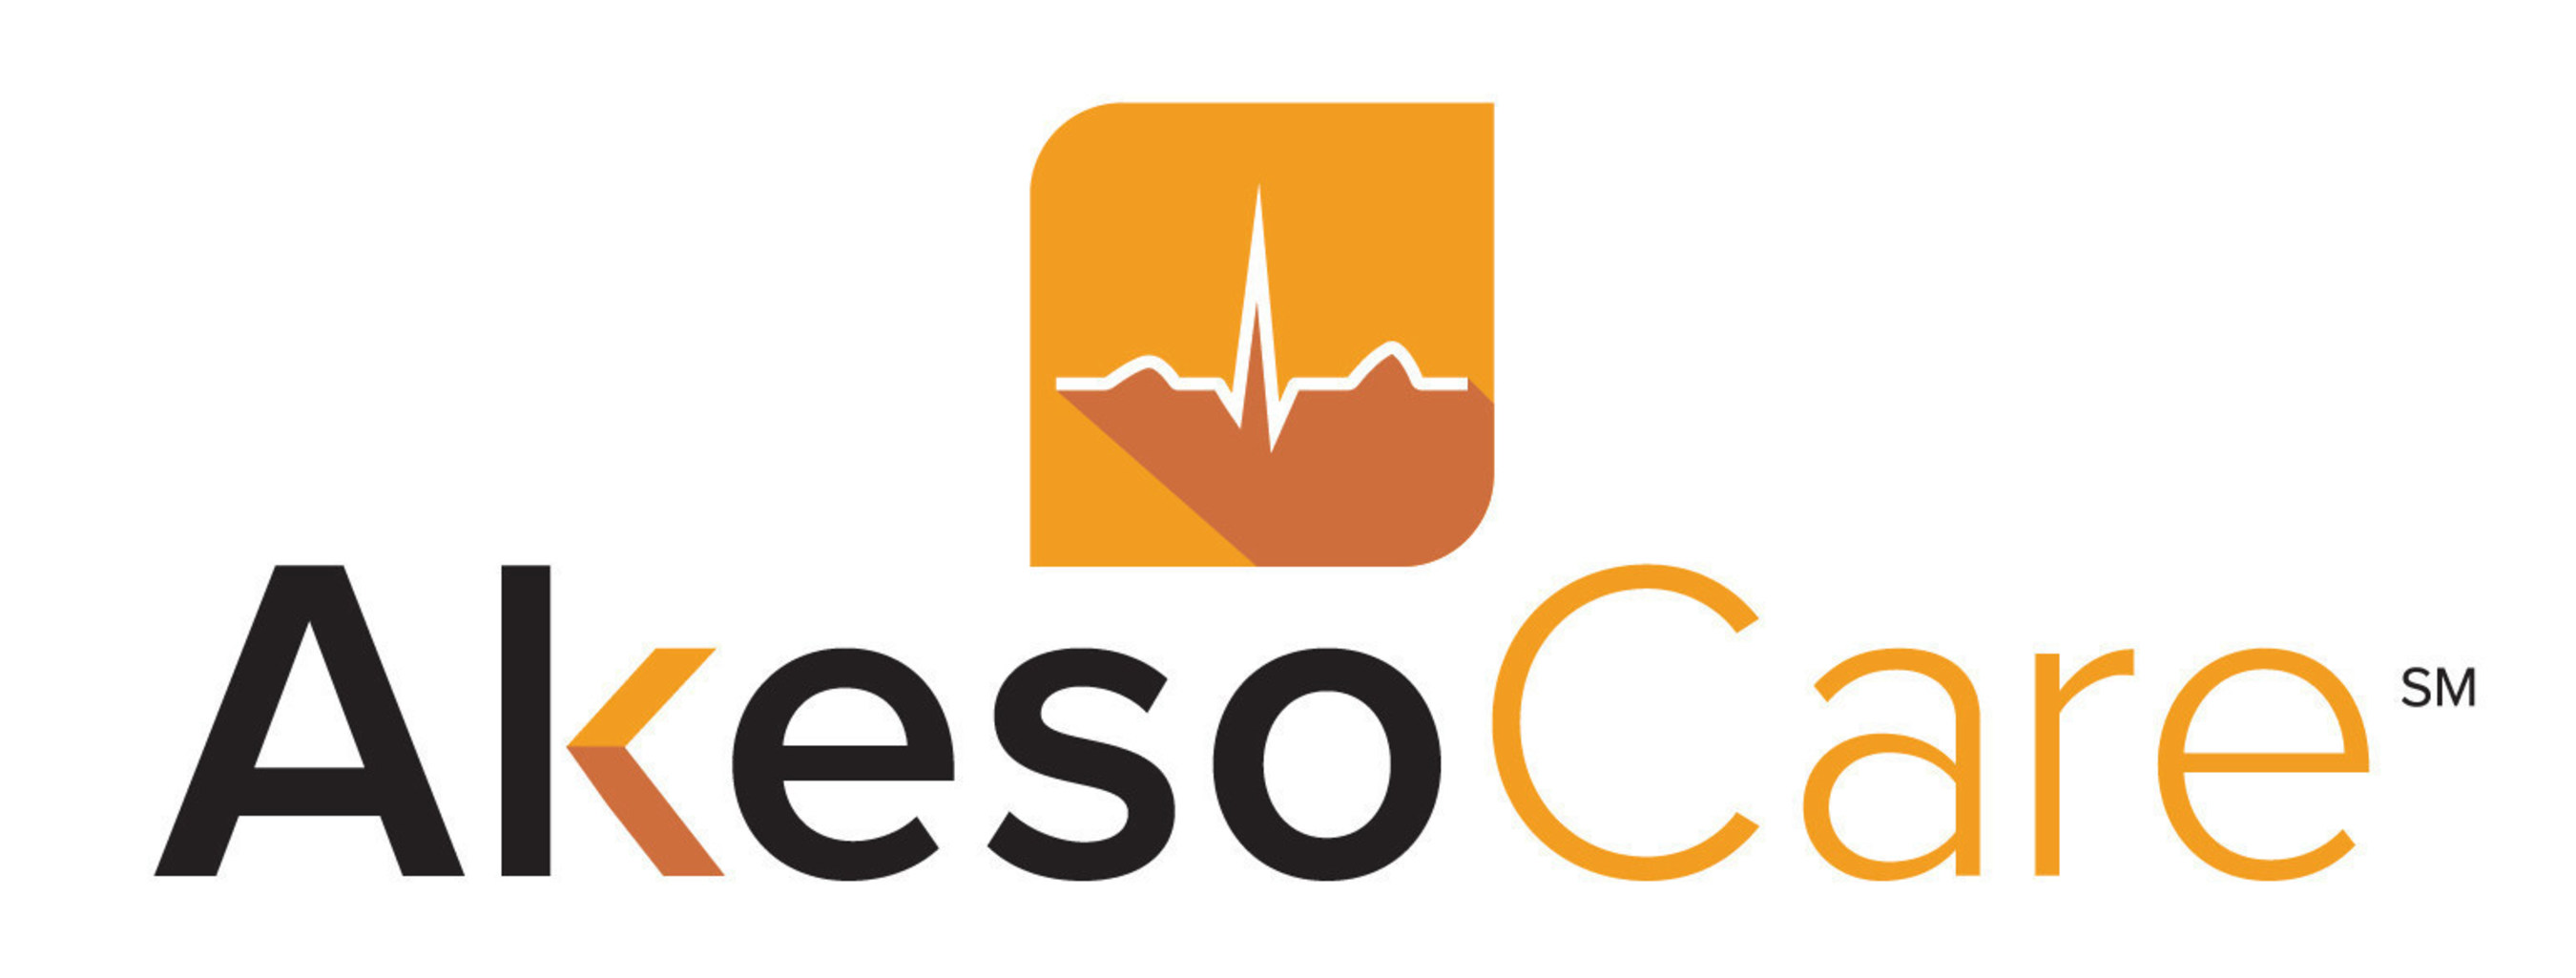 AkesoCare's new logo evokes a sense of optimism and passion -- the same traits AkesoCare employees convey as they coordinate both routine clinical care and emergency medical treatment for their members.